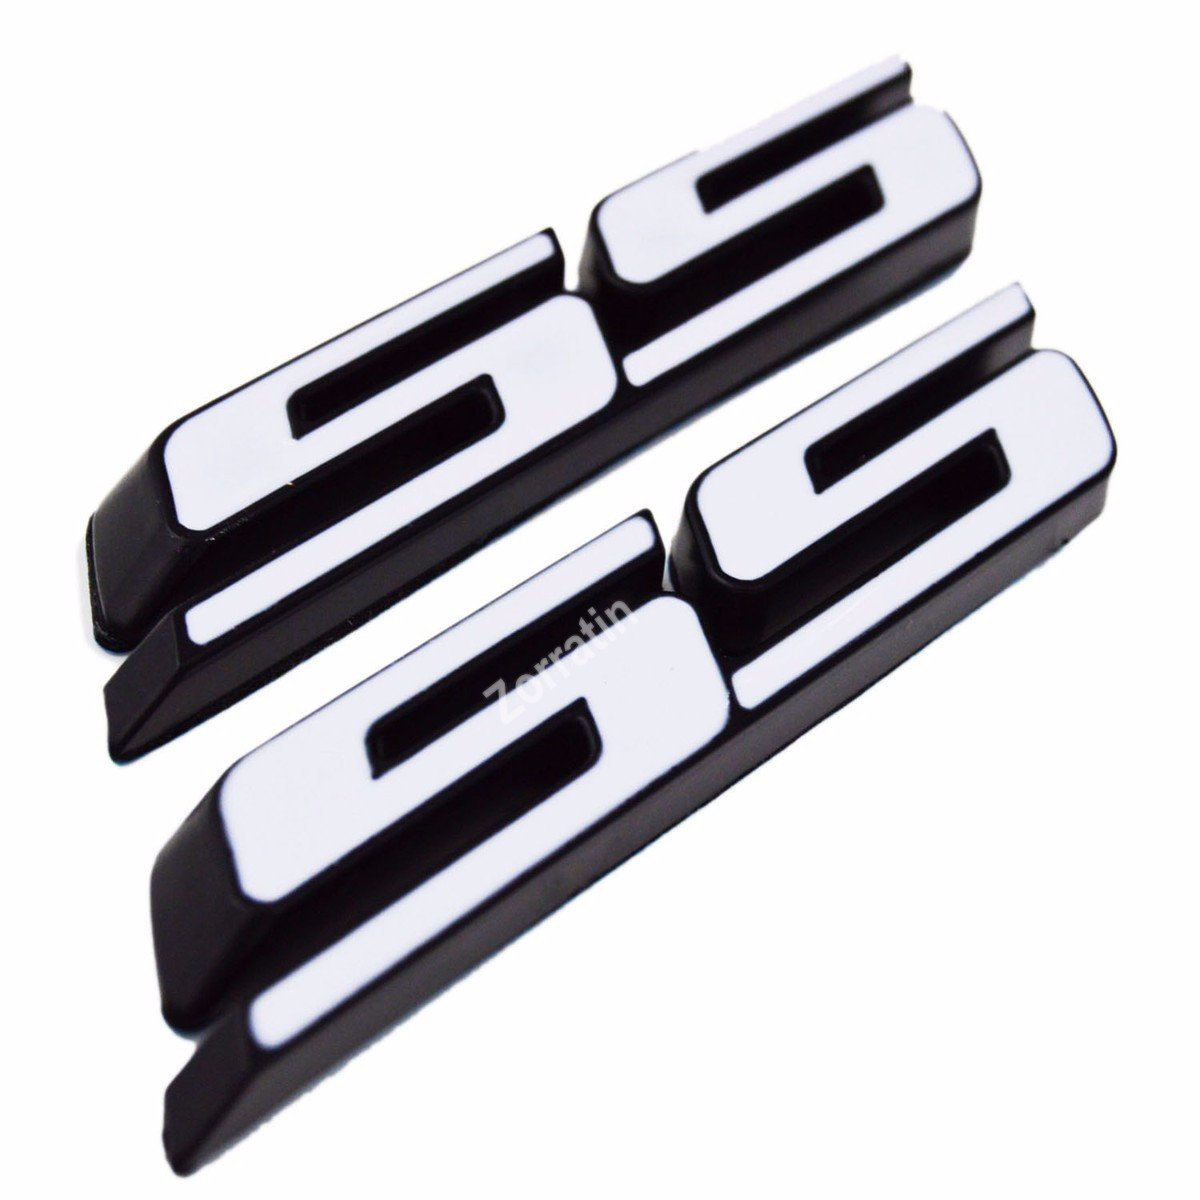 Blue Slant SS Grill Side Trunk Emblem Badge Decal with Adhesive for Chevy IMPALA COBALT Camaro 2010-2015 2 pieces